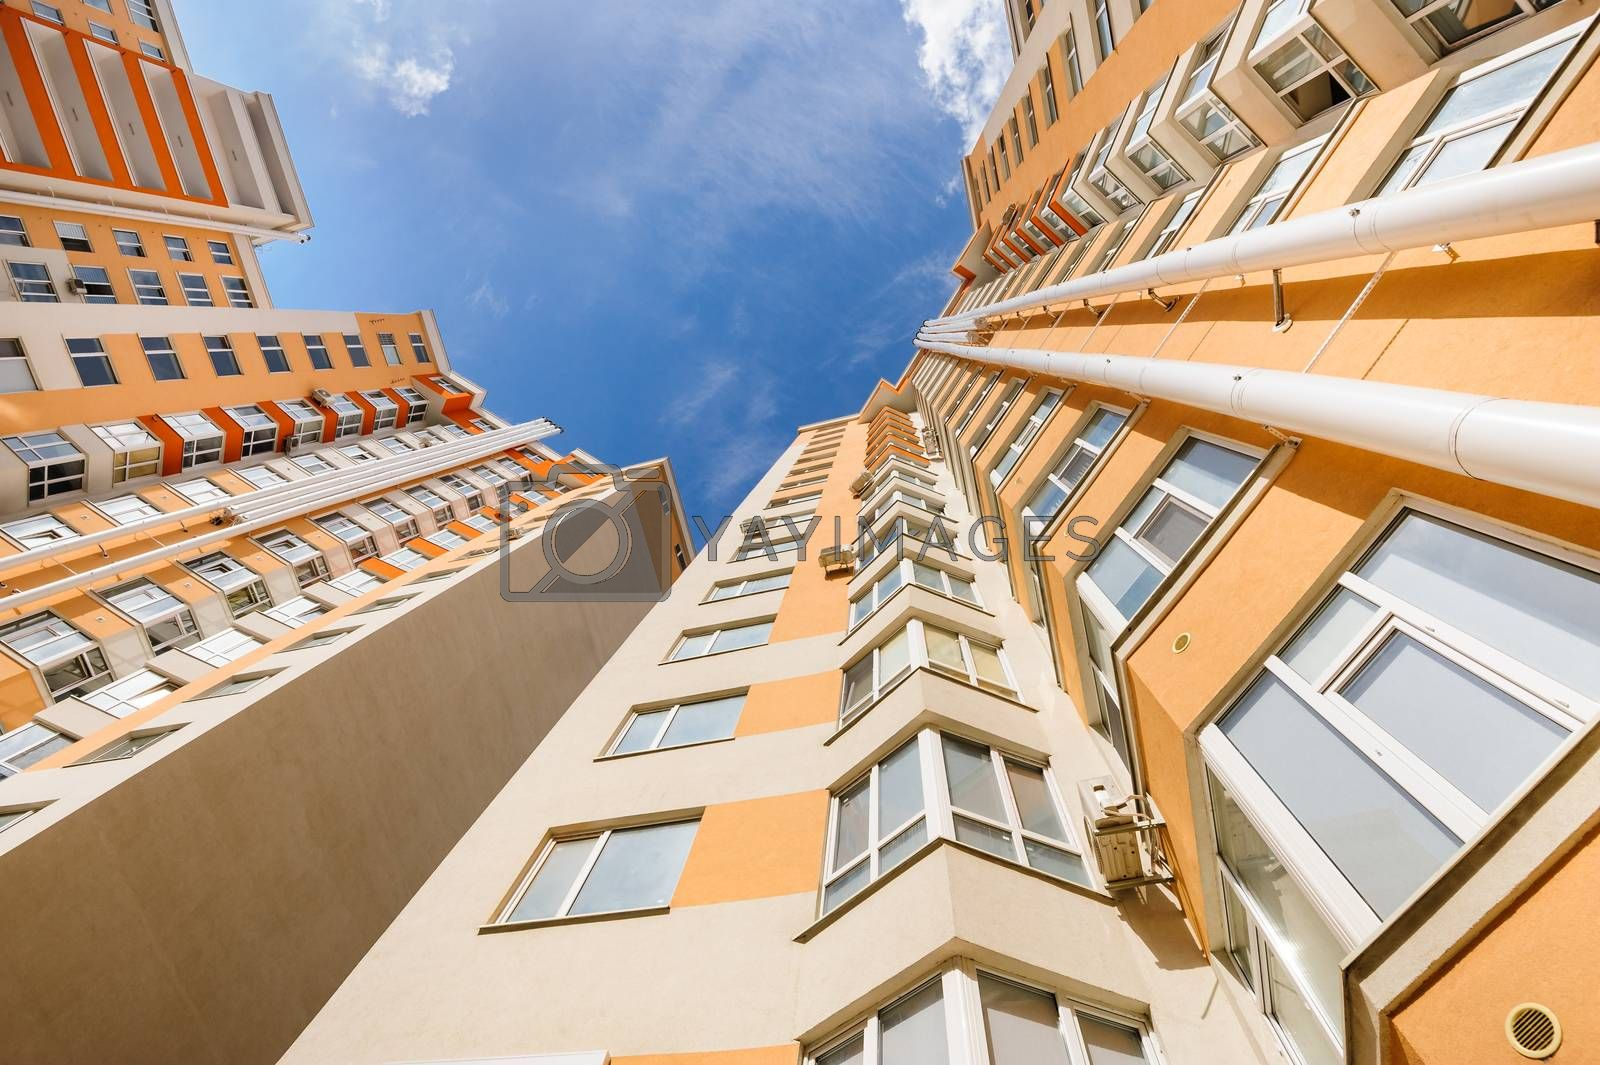 Wide angle shot of new apartments residential buildings exterior